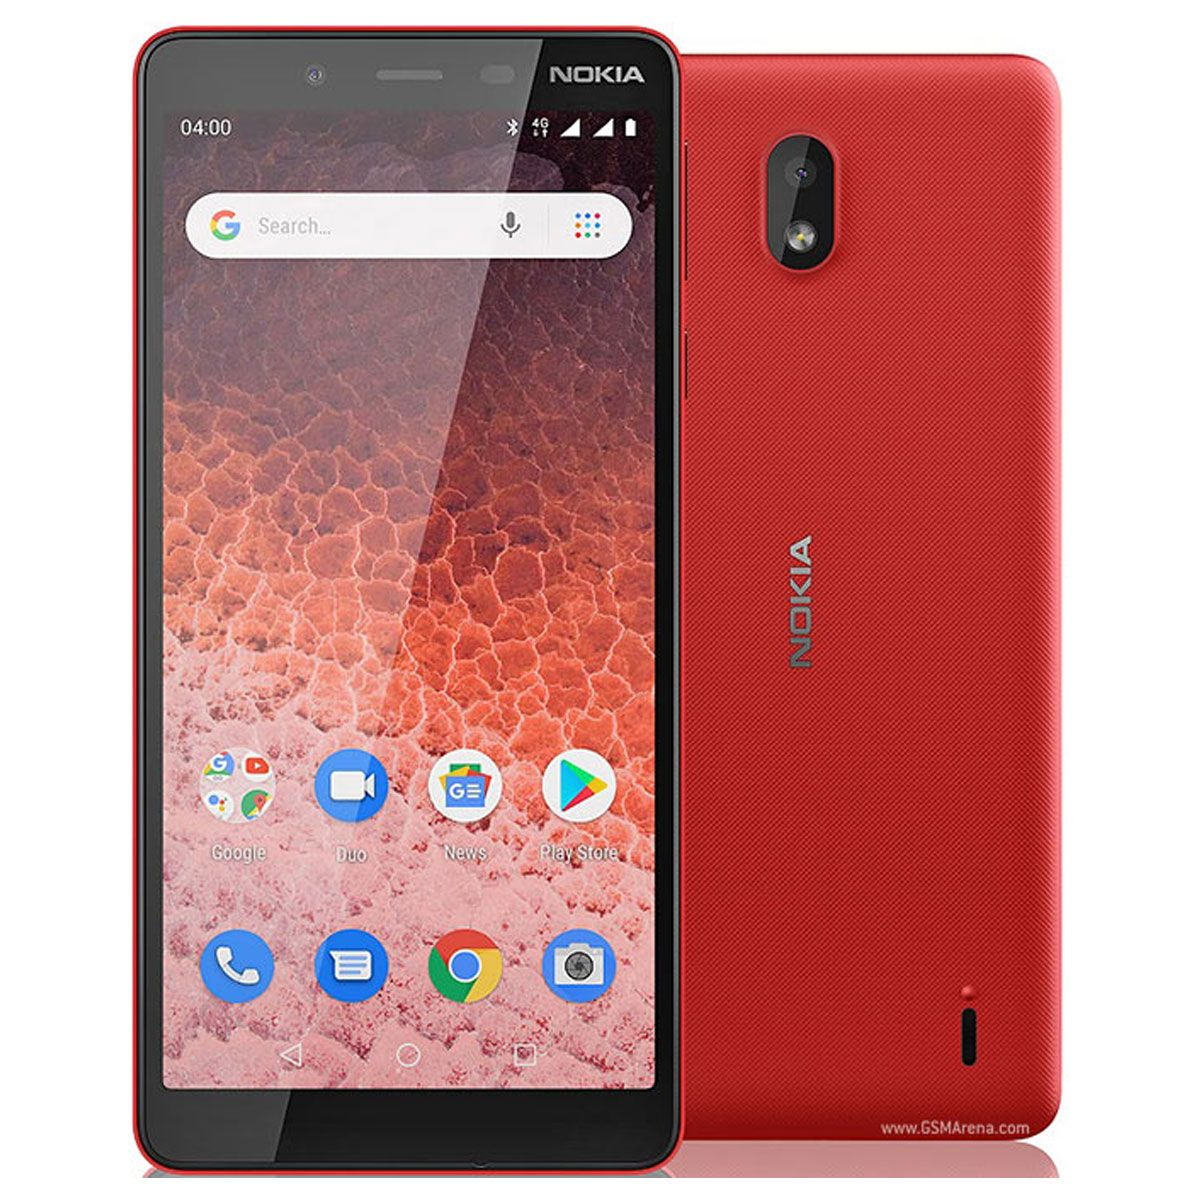 Latest Price List of Nokia Mobile Phones in Pakistan | PriceOye